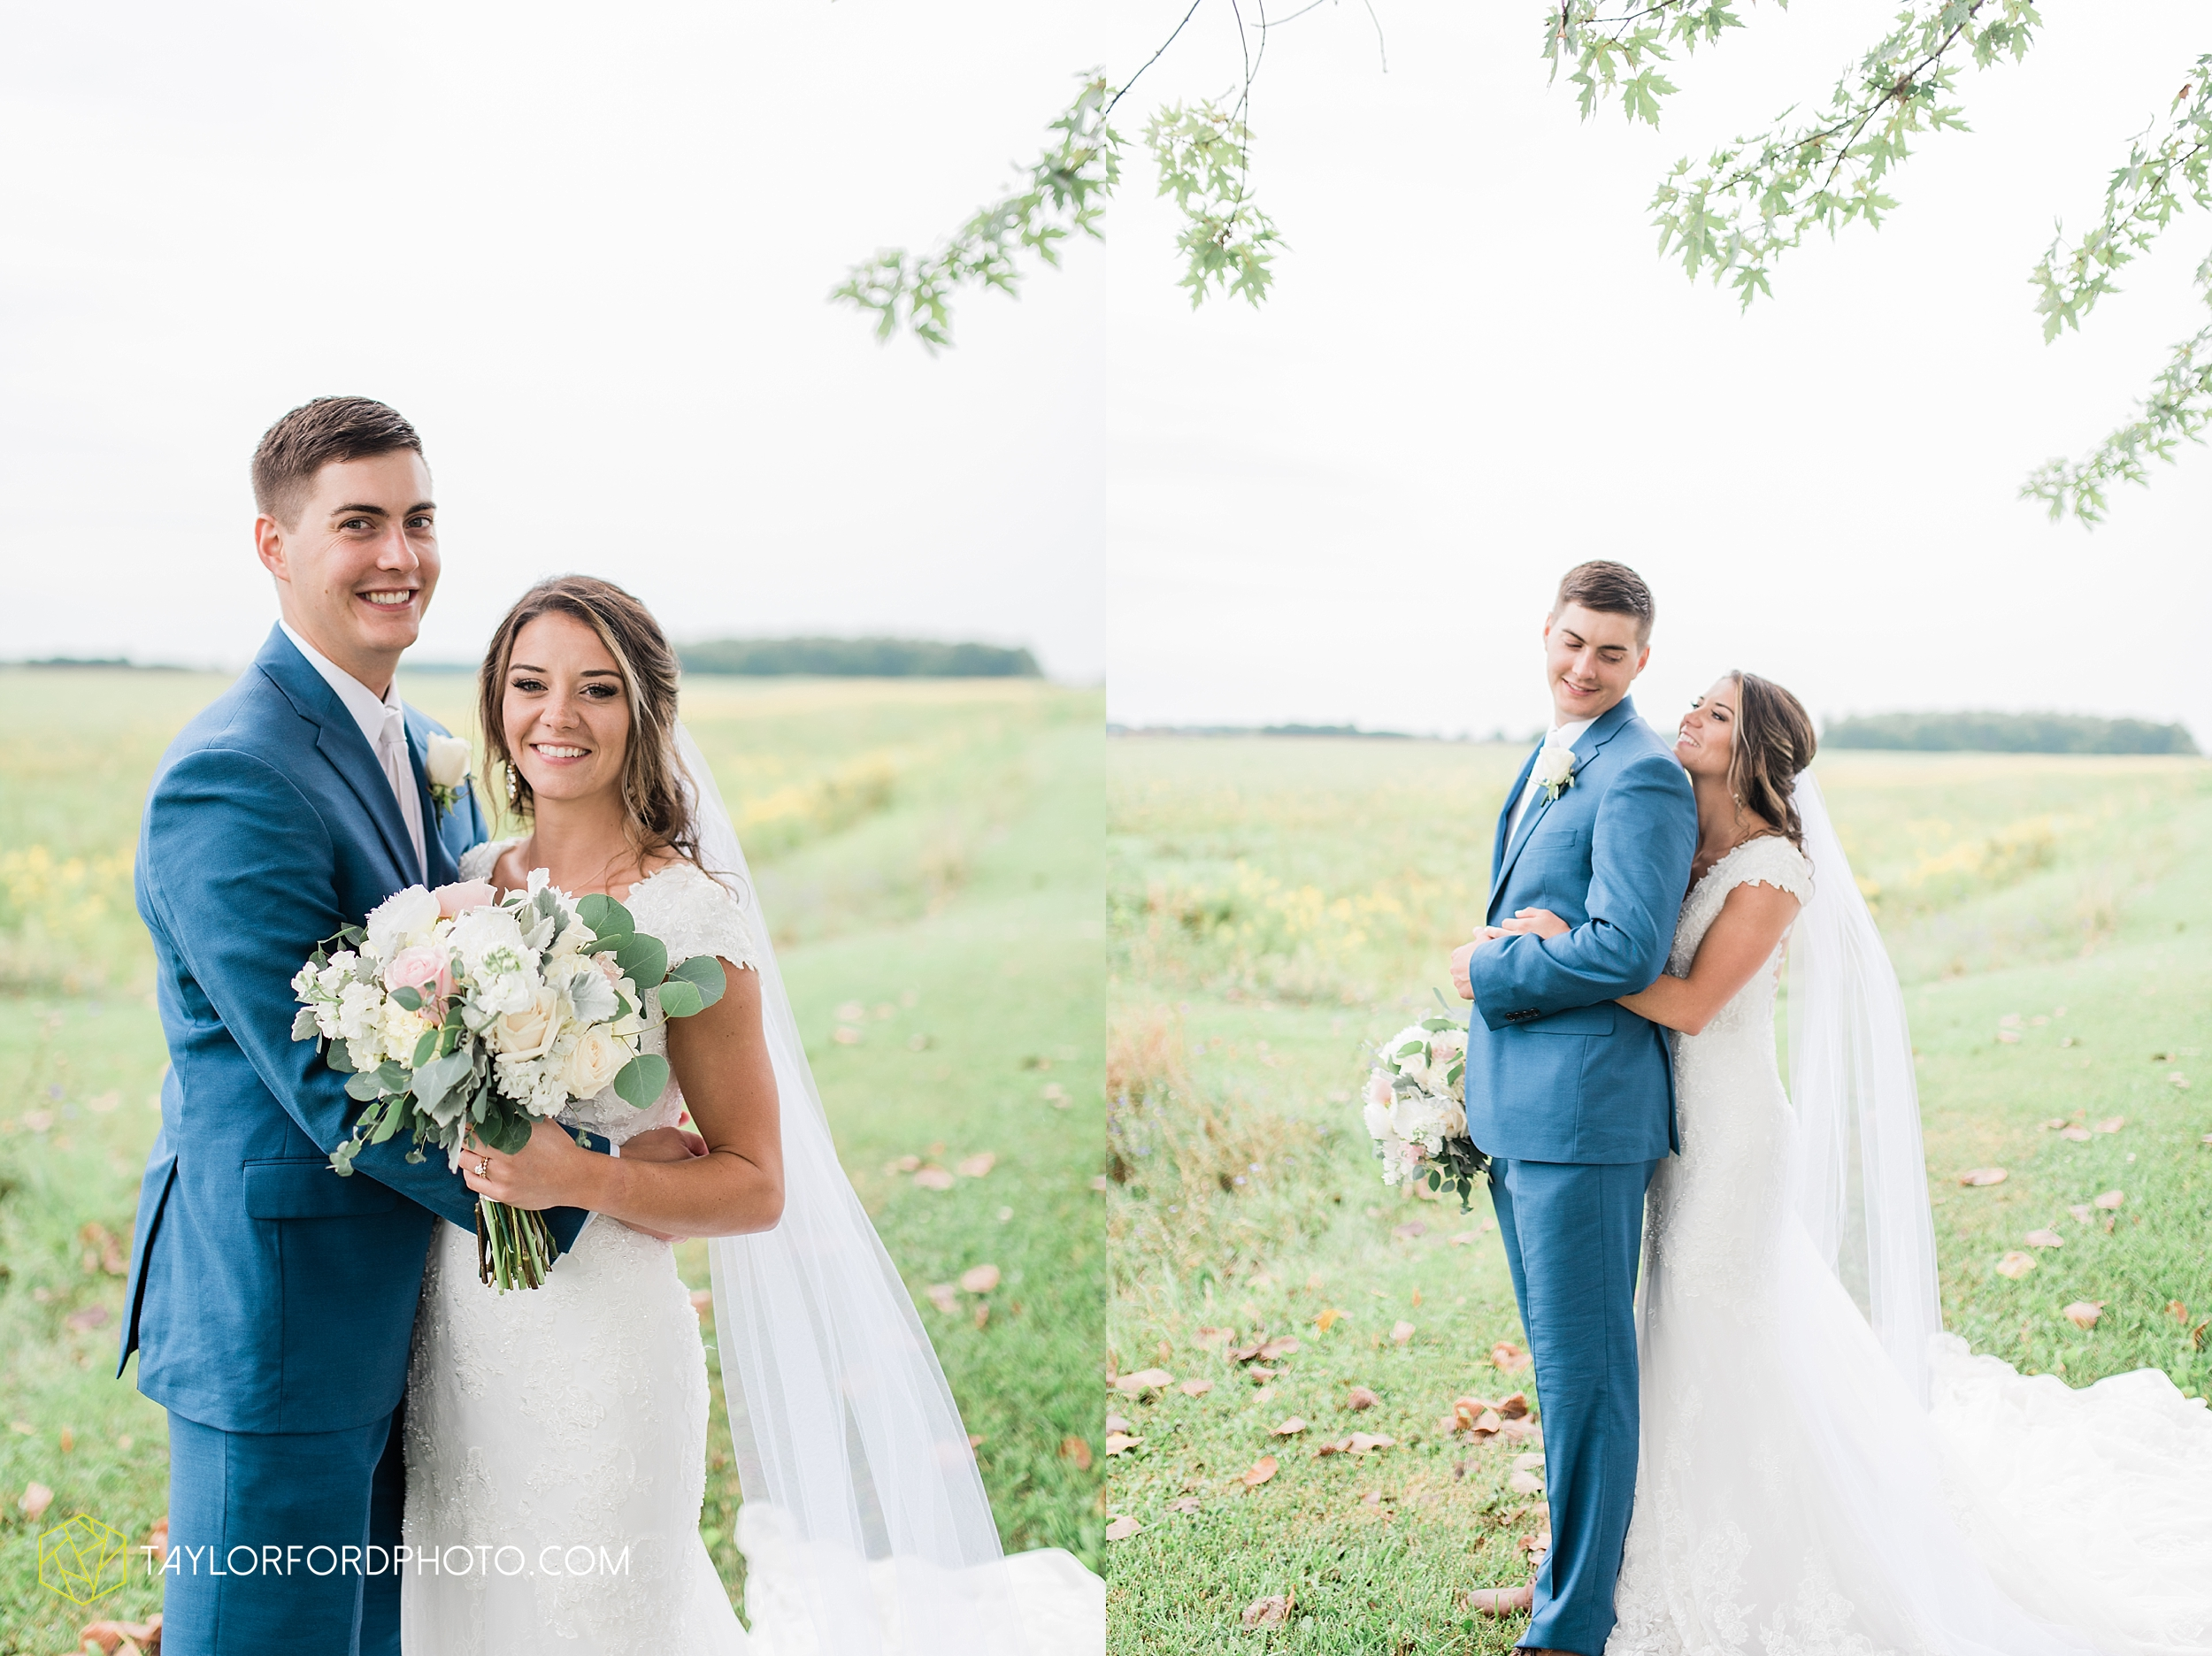 kacee-haden-sholl-second-story-saint-marys-knights-of-columbus-defiance-ohio-wedding-photographer-taylor-ford-photography_0175.jpg